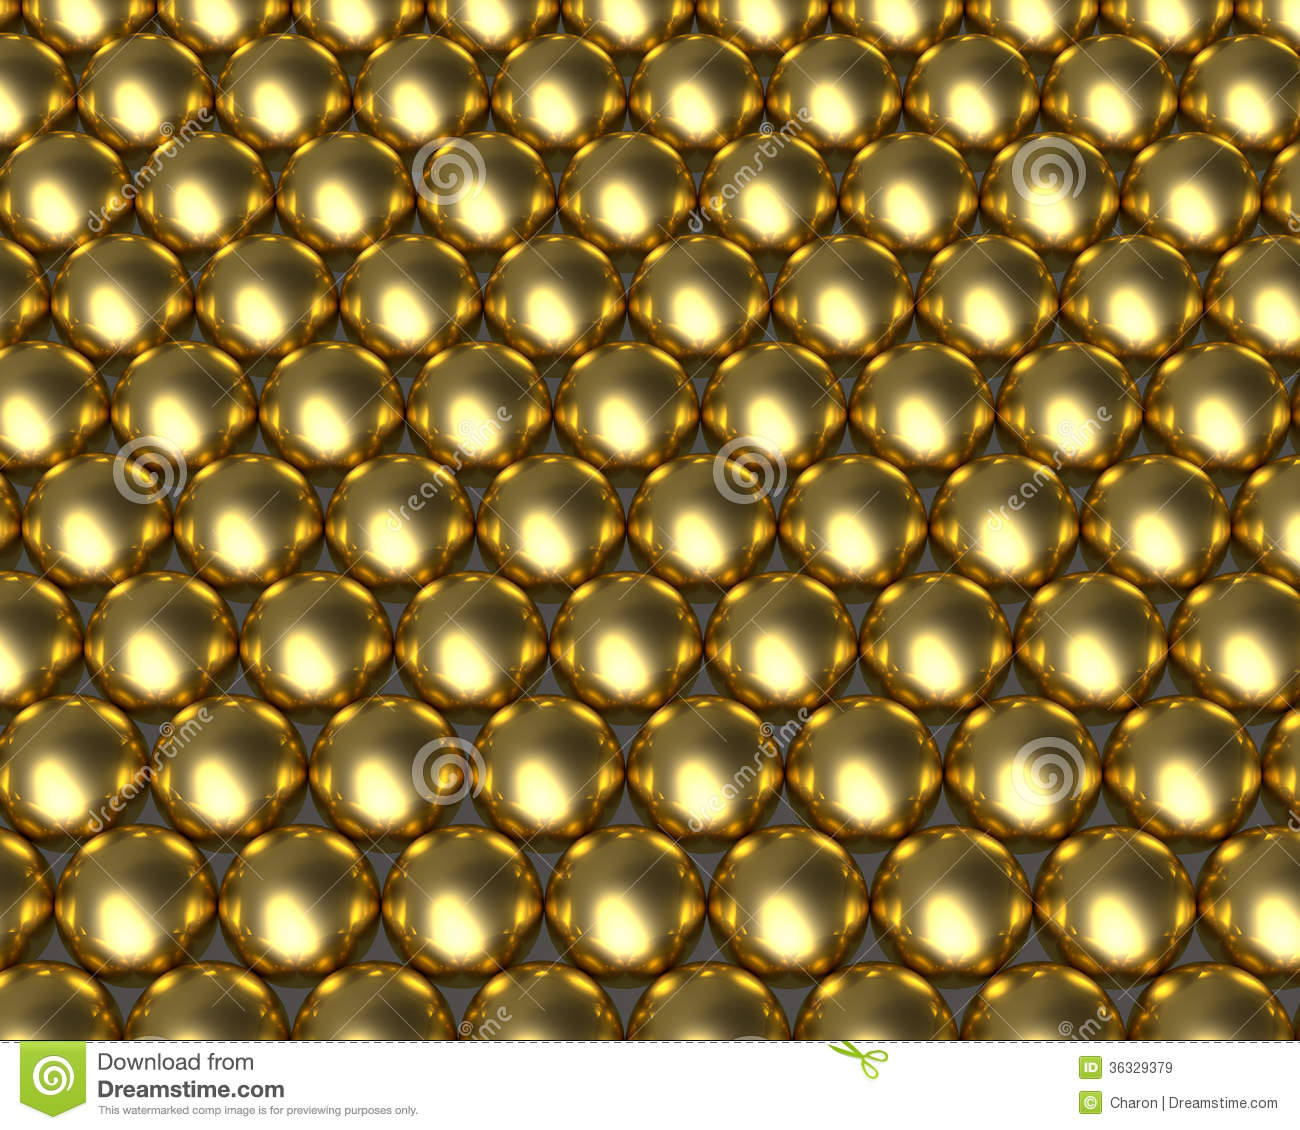 Golden Ball Pattern Reflective Balls Royalty Free Stock Images - Image ...